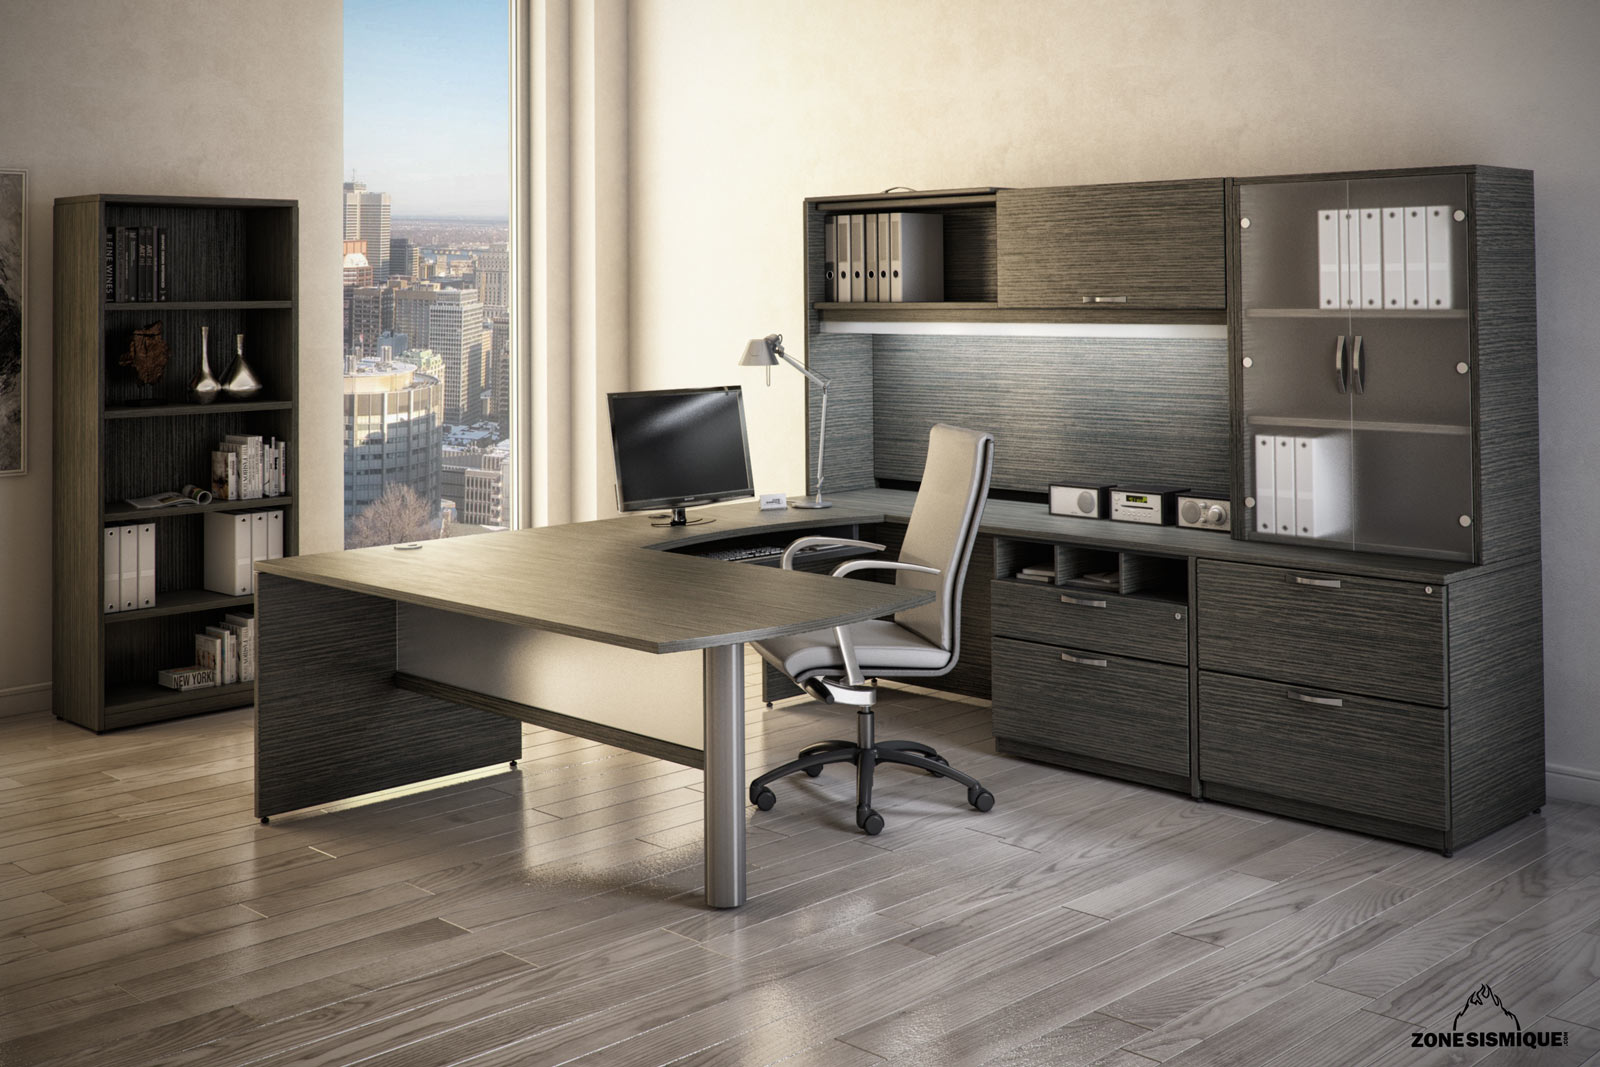 bureau office zone sismique pli office bureau oceane bureau denis v5 zone sismique design. Black Bedroom Furniture Sets. Home Design Ideas